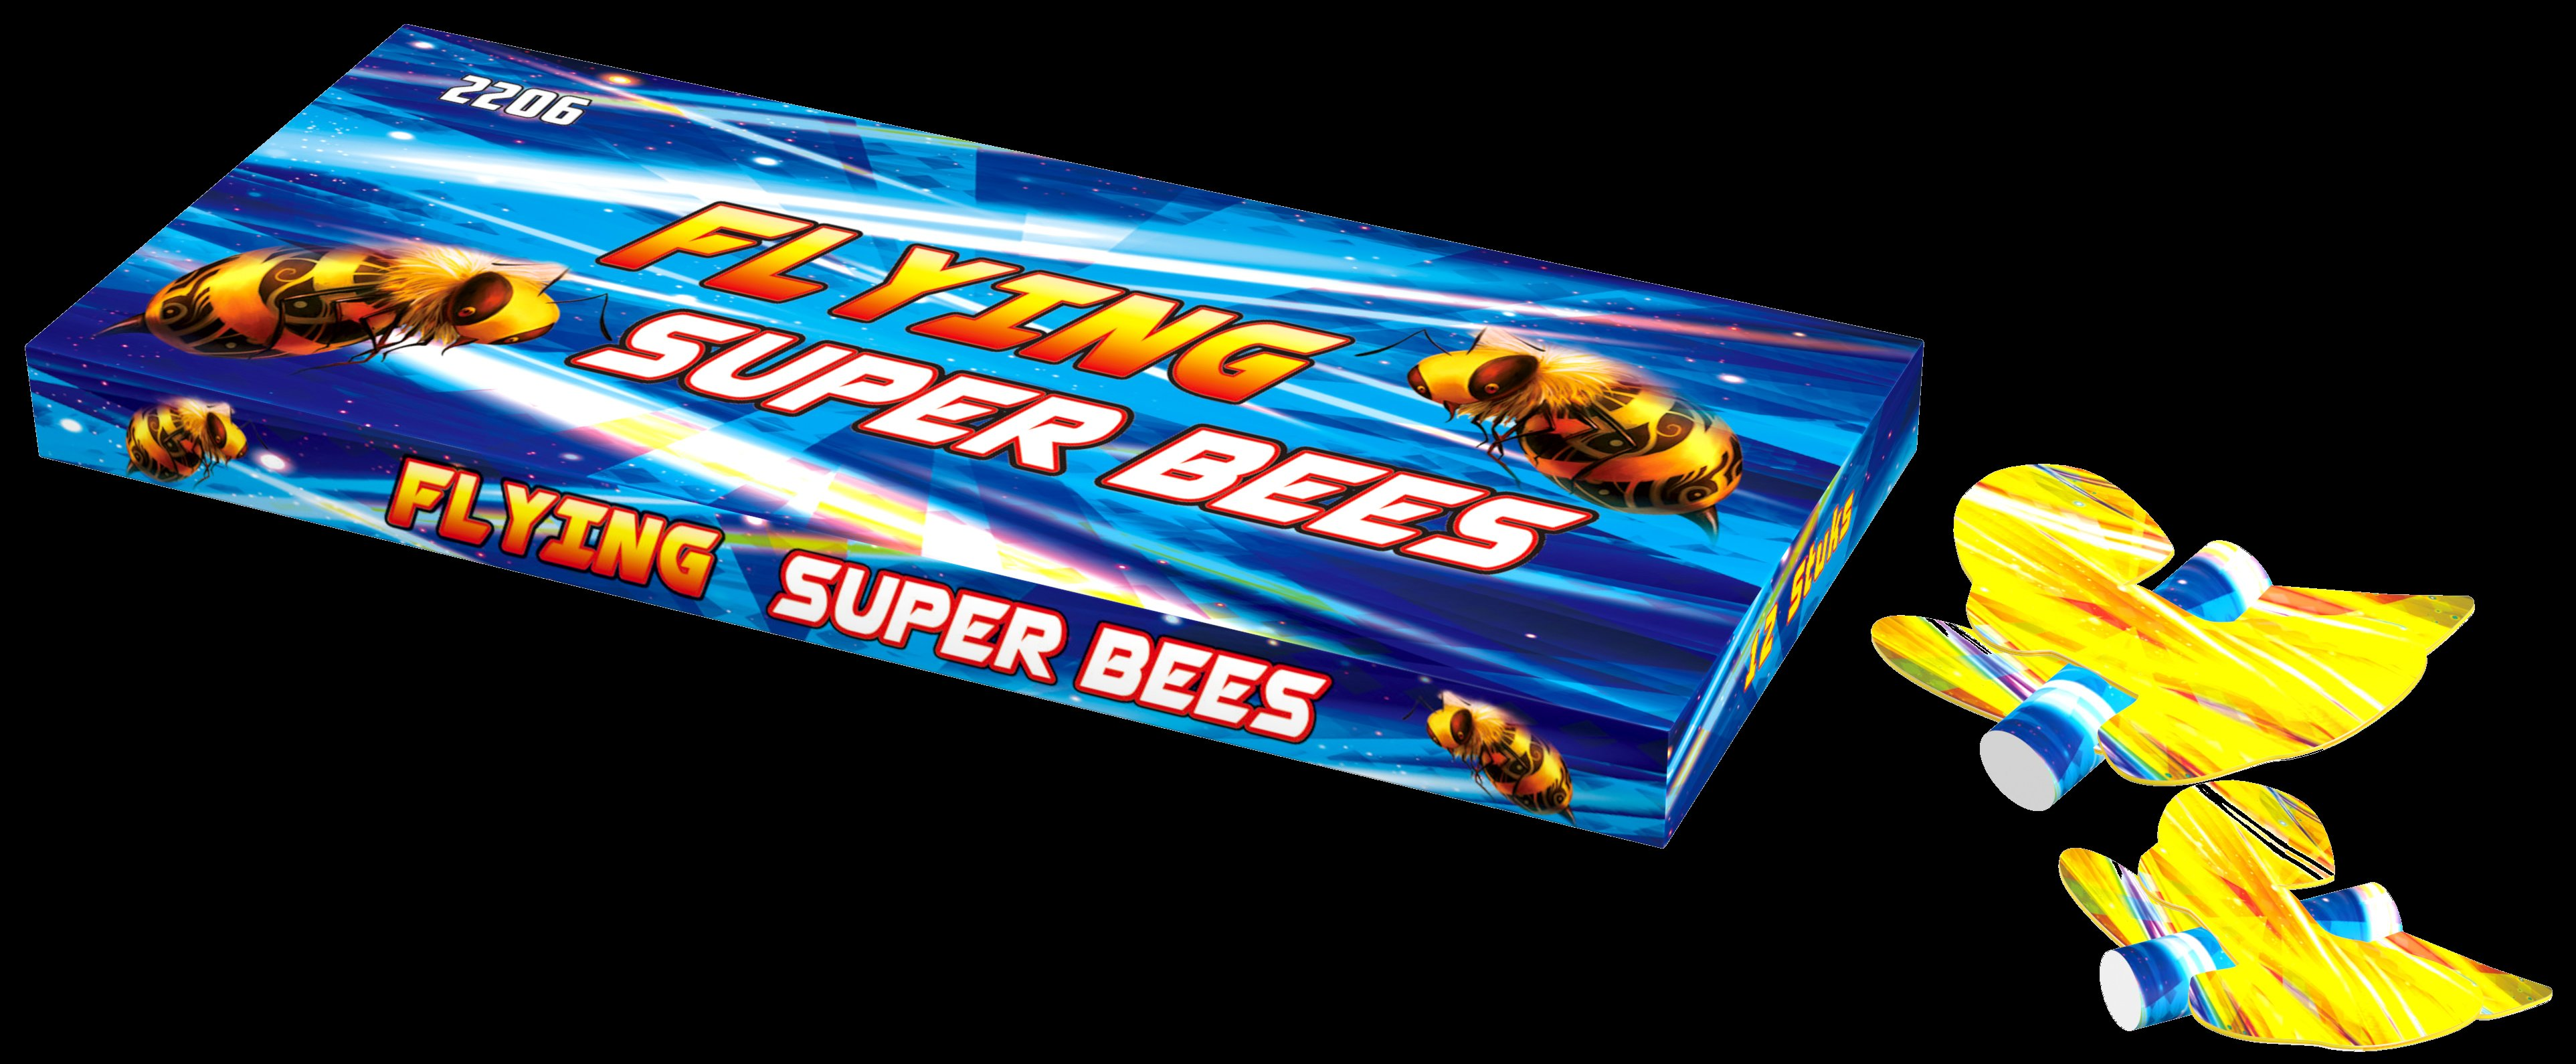 Flying super bees